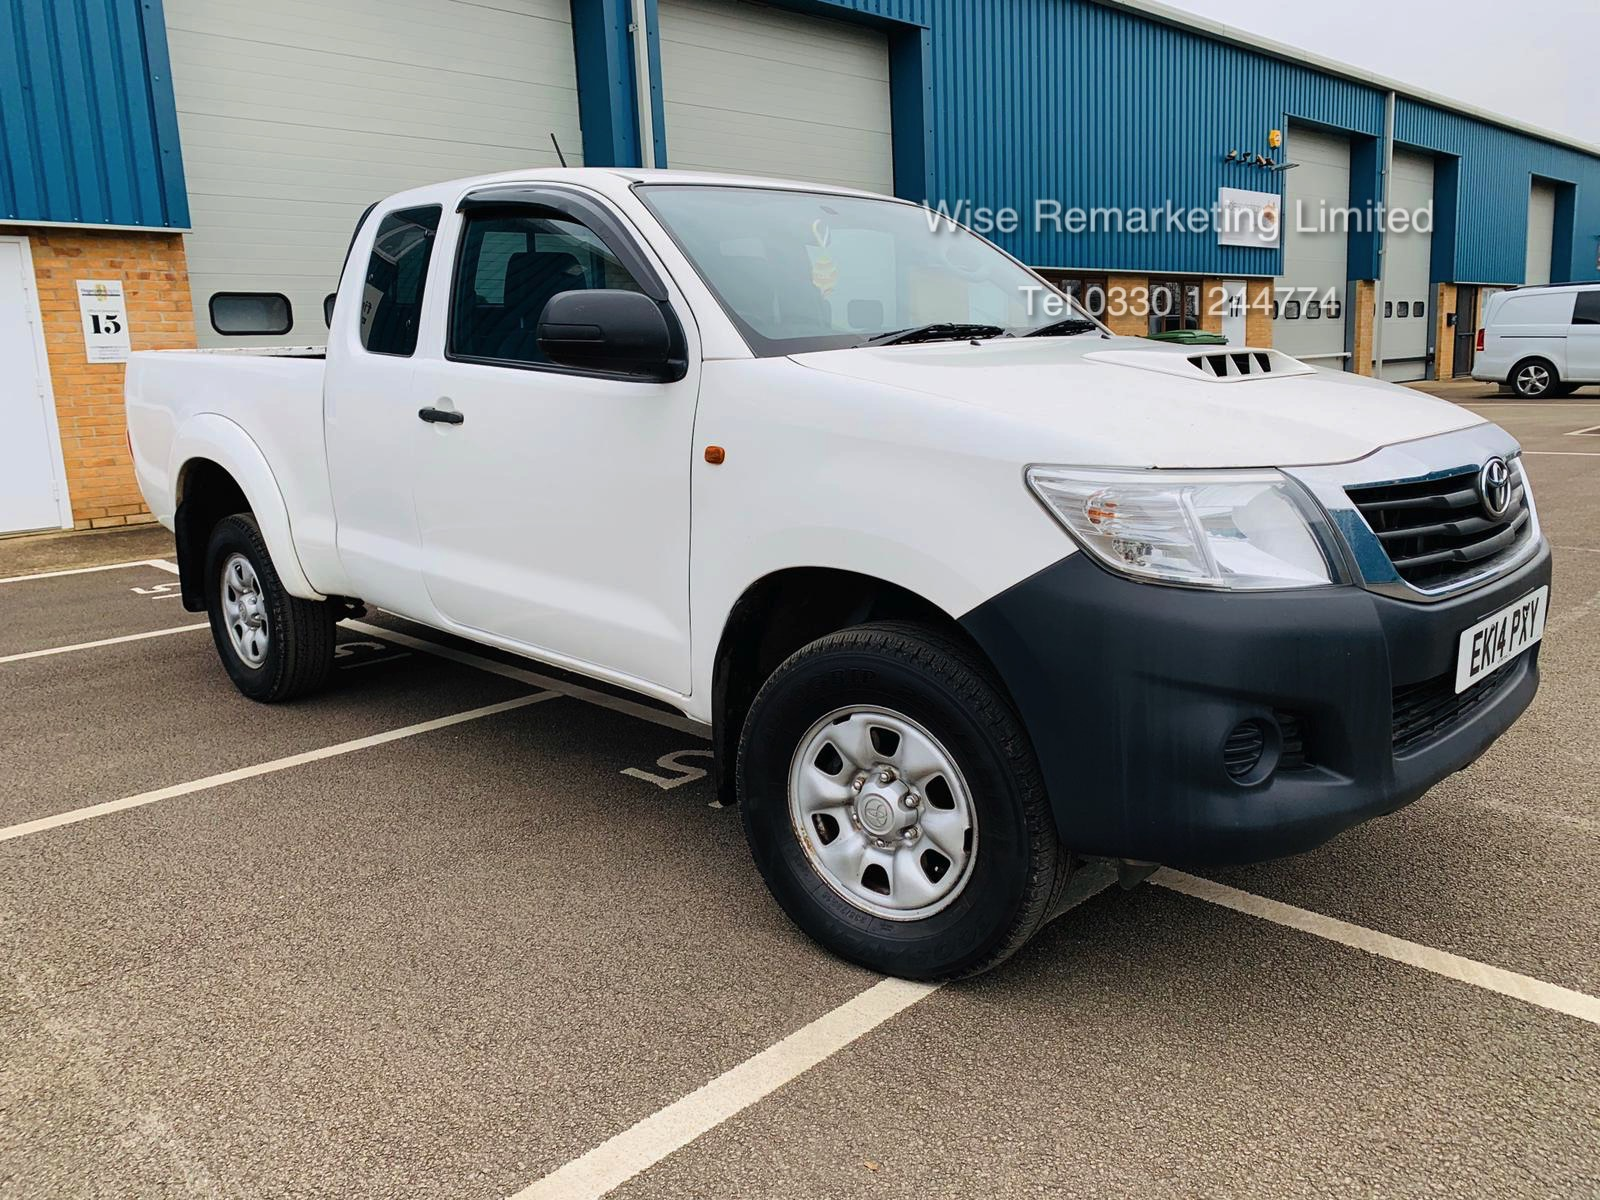 Reserve Met Toyota Hilux Active 2.5 D-4D 4X4 - 2014 14 Reg - Air Con - Tow Pack - SAVE 20% NO VAT - Image 2 of 17